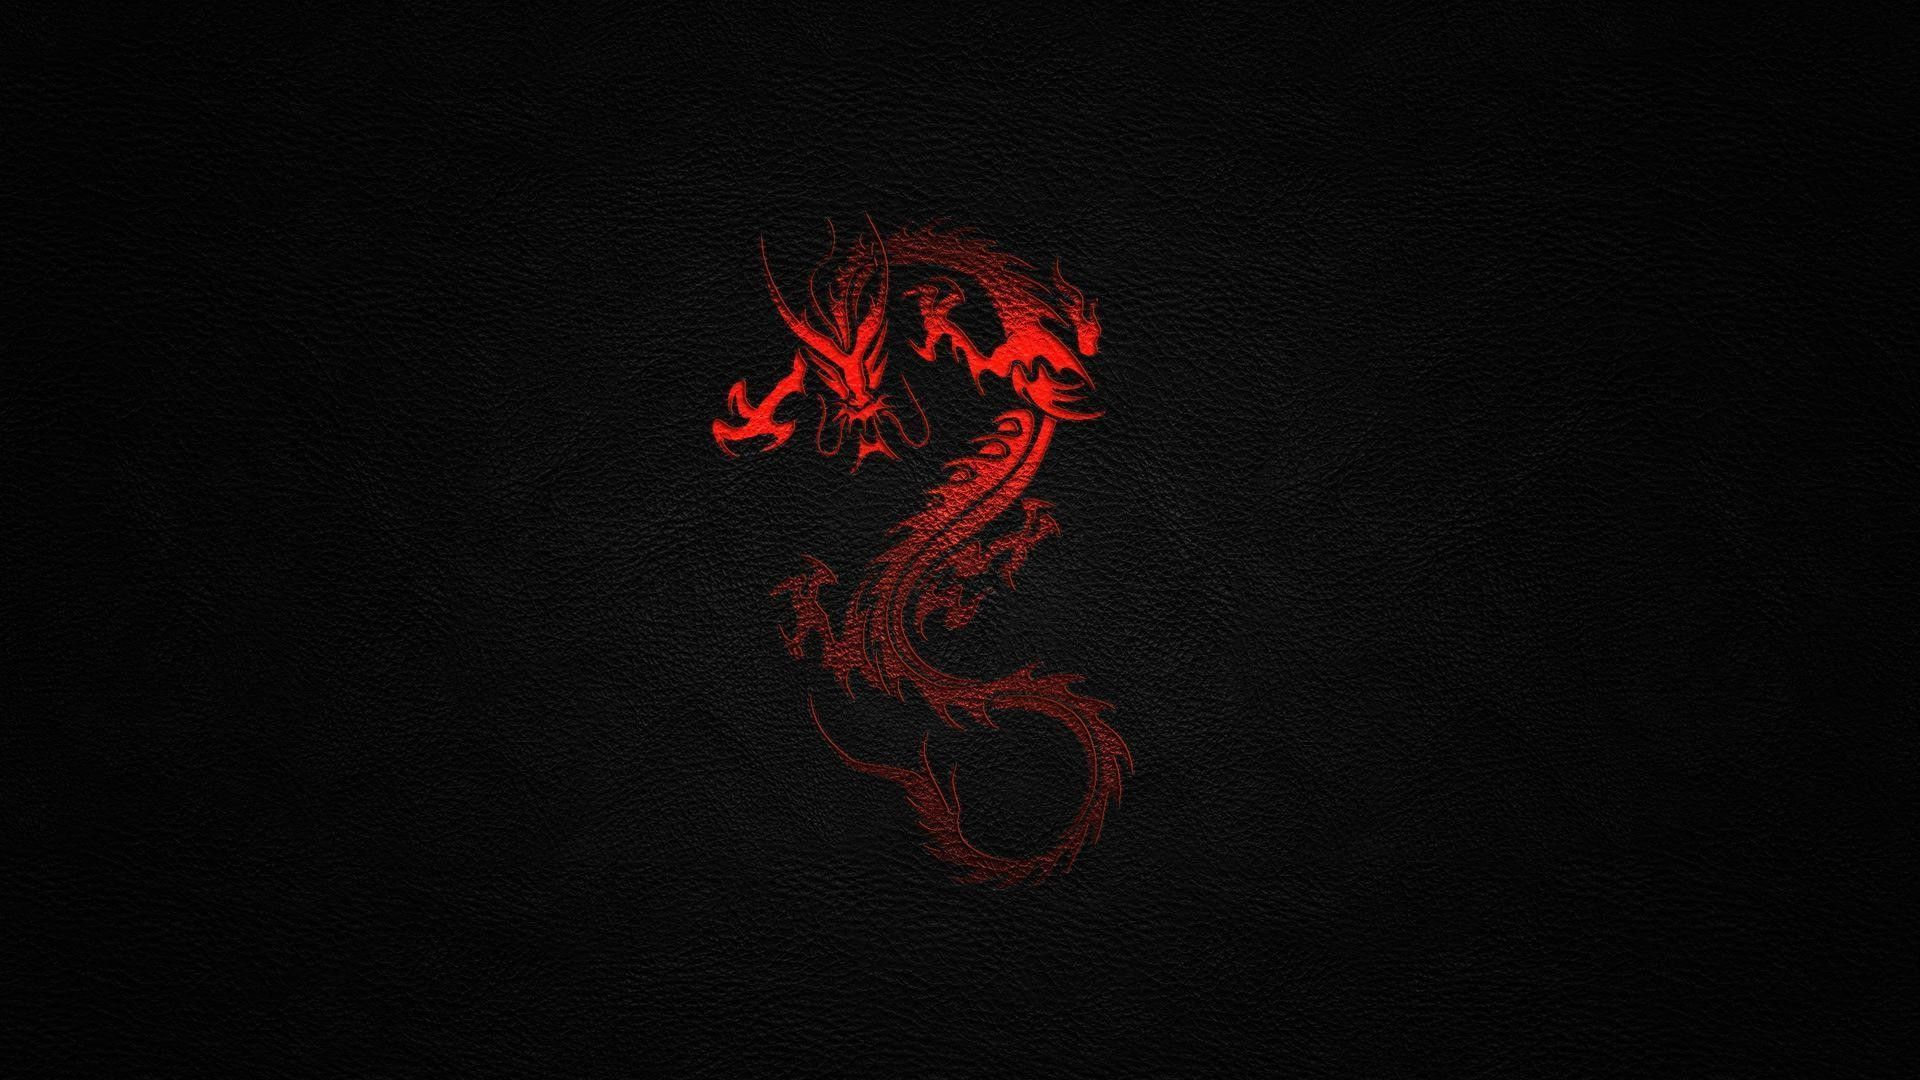 Chinese Red Dragon Wallpapers Top Free Chinese Red Dragon Backgrounds Wallpaperaccess